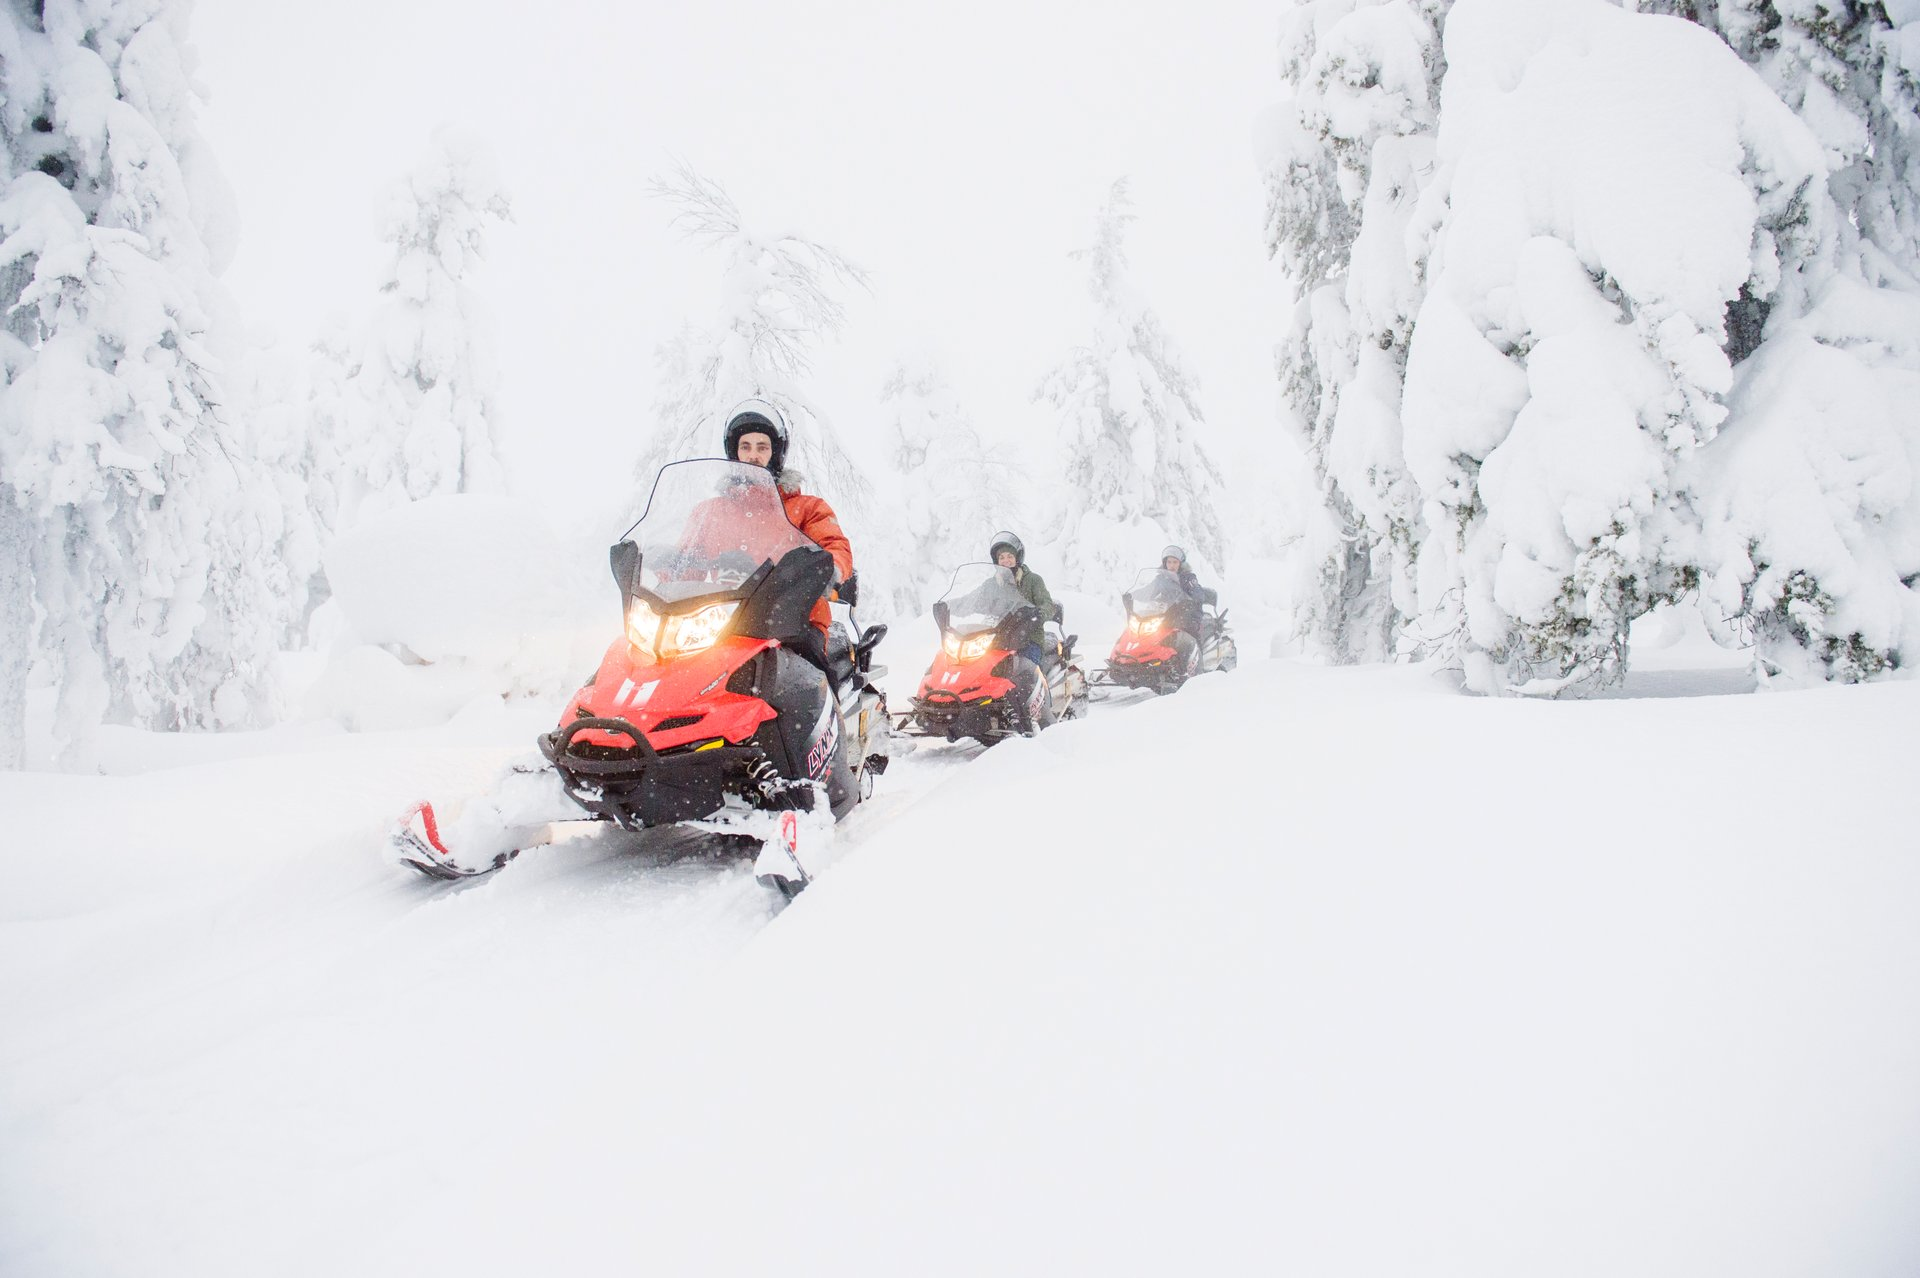 Snowmobiling in Finland 2019 - Best Time